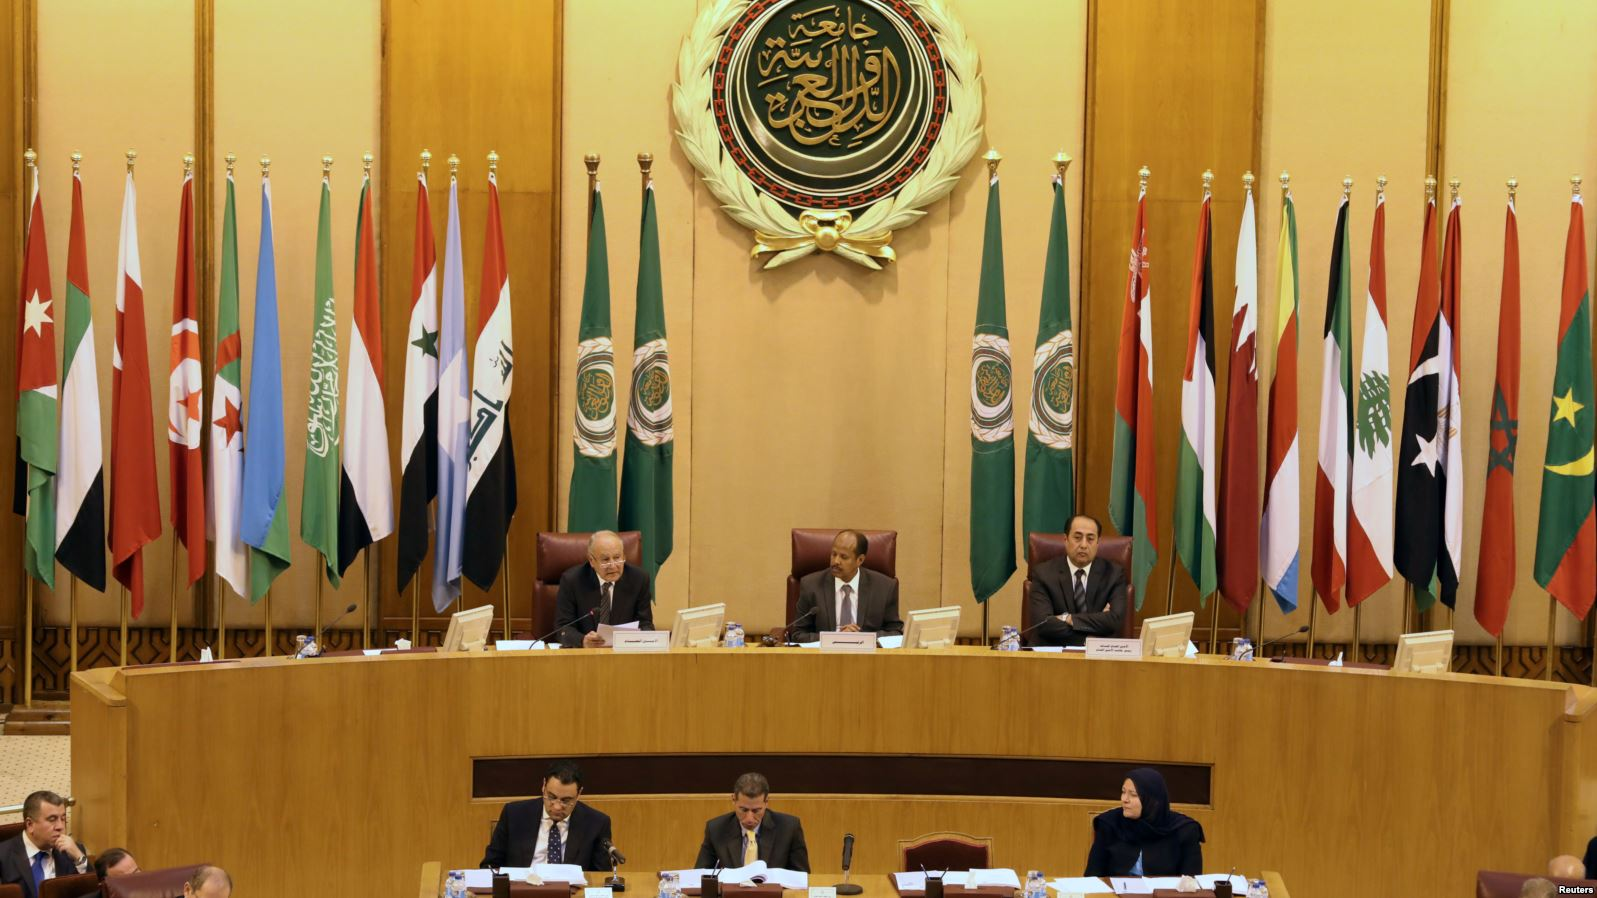 Bangladesh President Hamid to join OIC special summit on Jerusalem